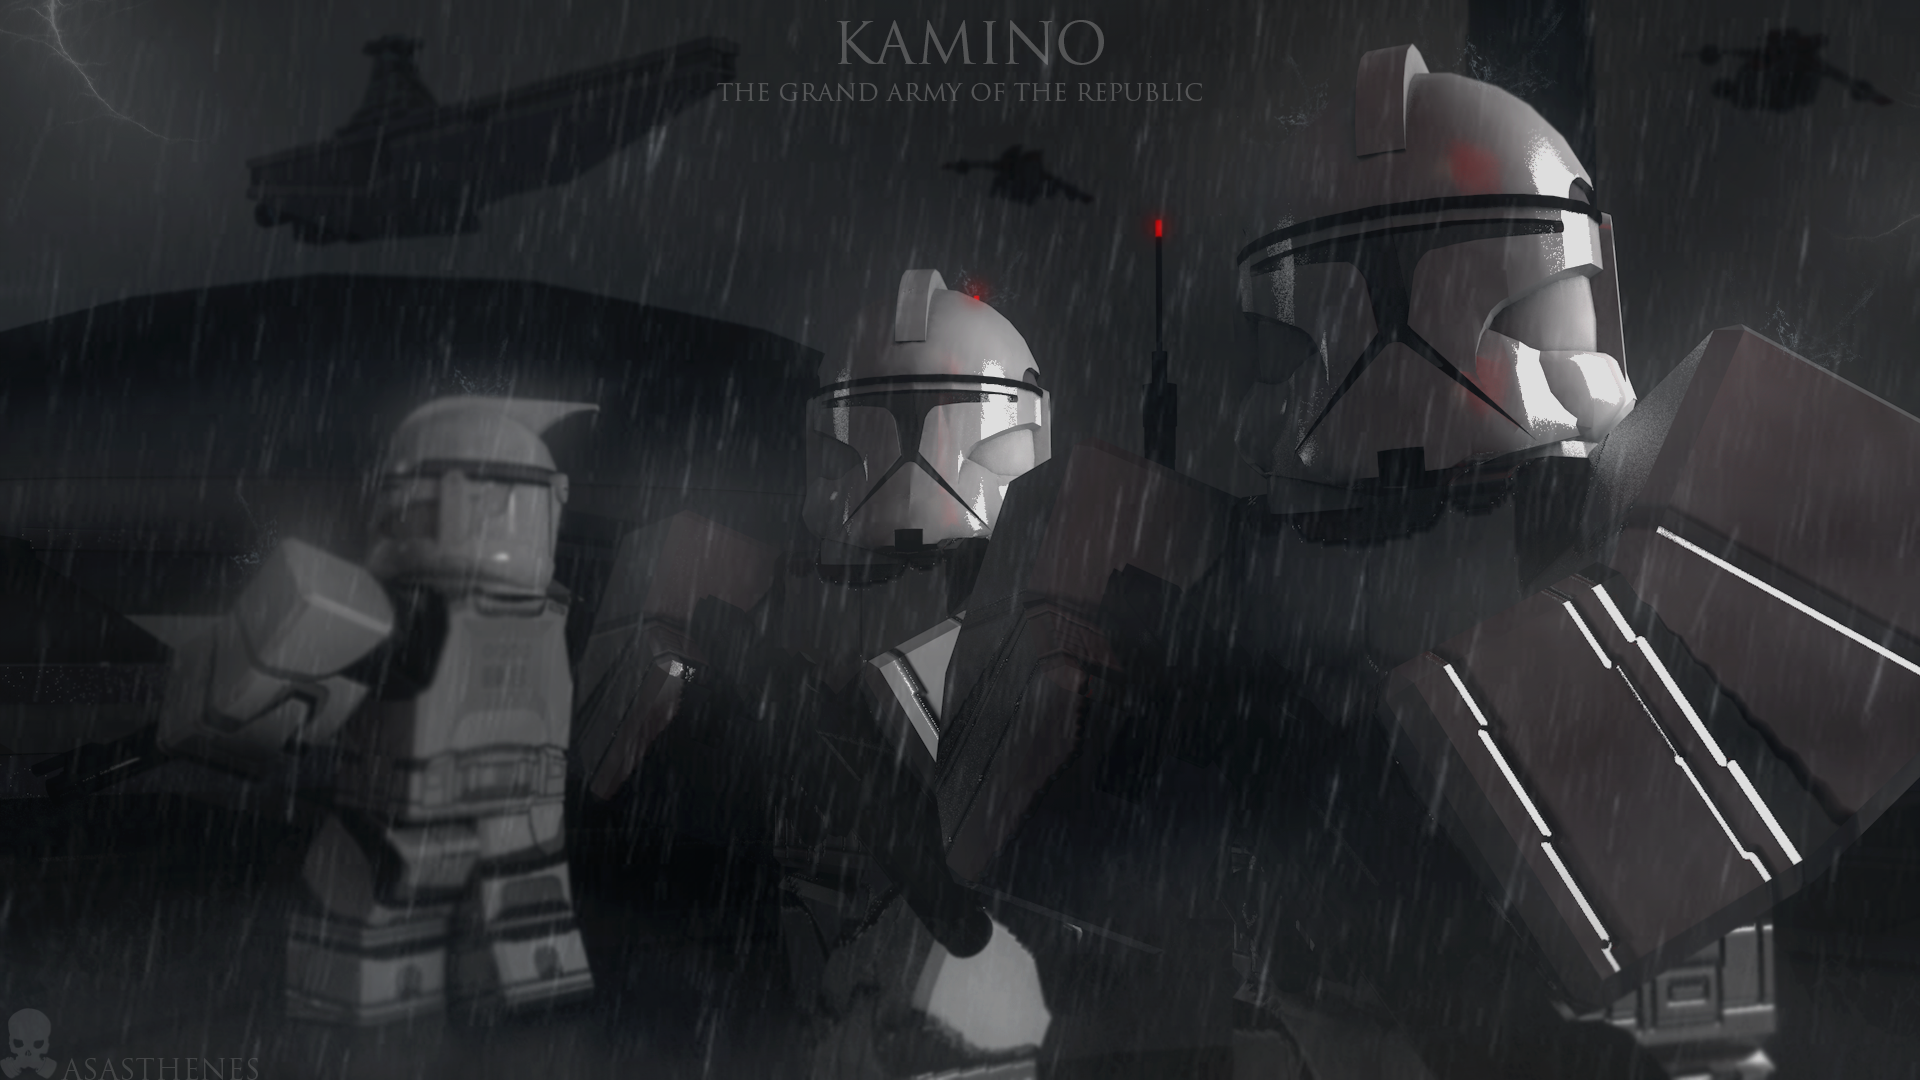 Kamino Remastered 4 Edited By Asasthenes On Deviantart